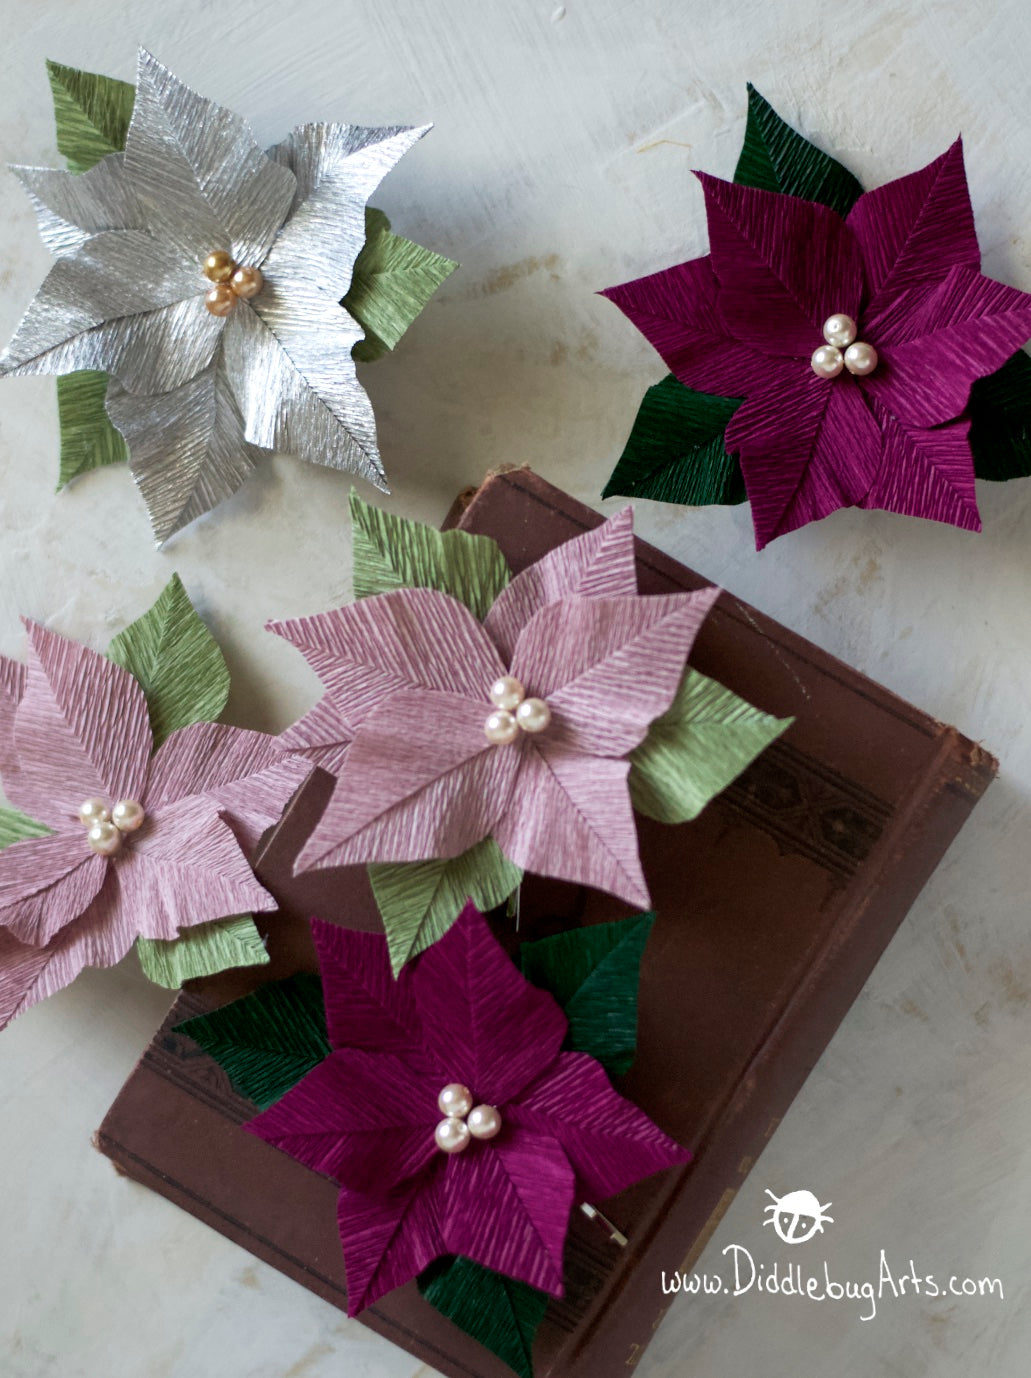 several tiny crepe paper poinsettia flowers hair pins